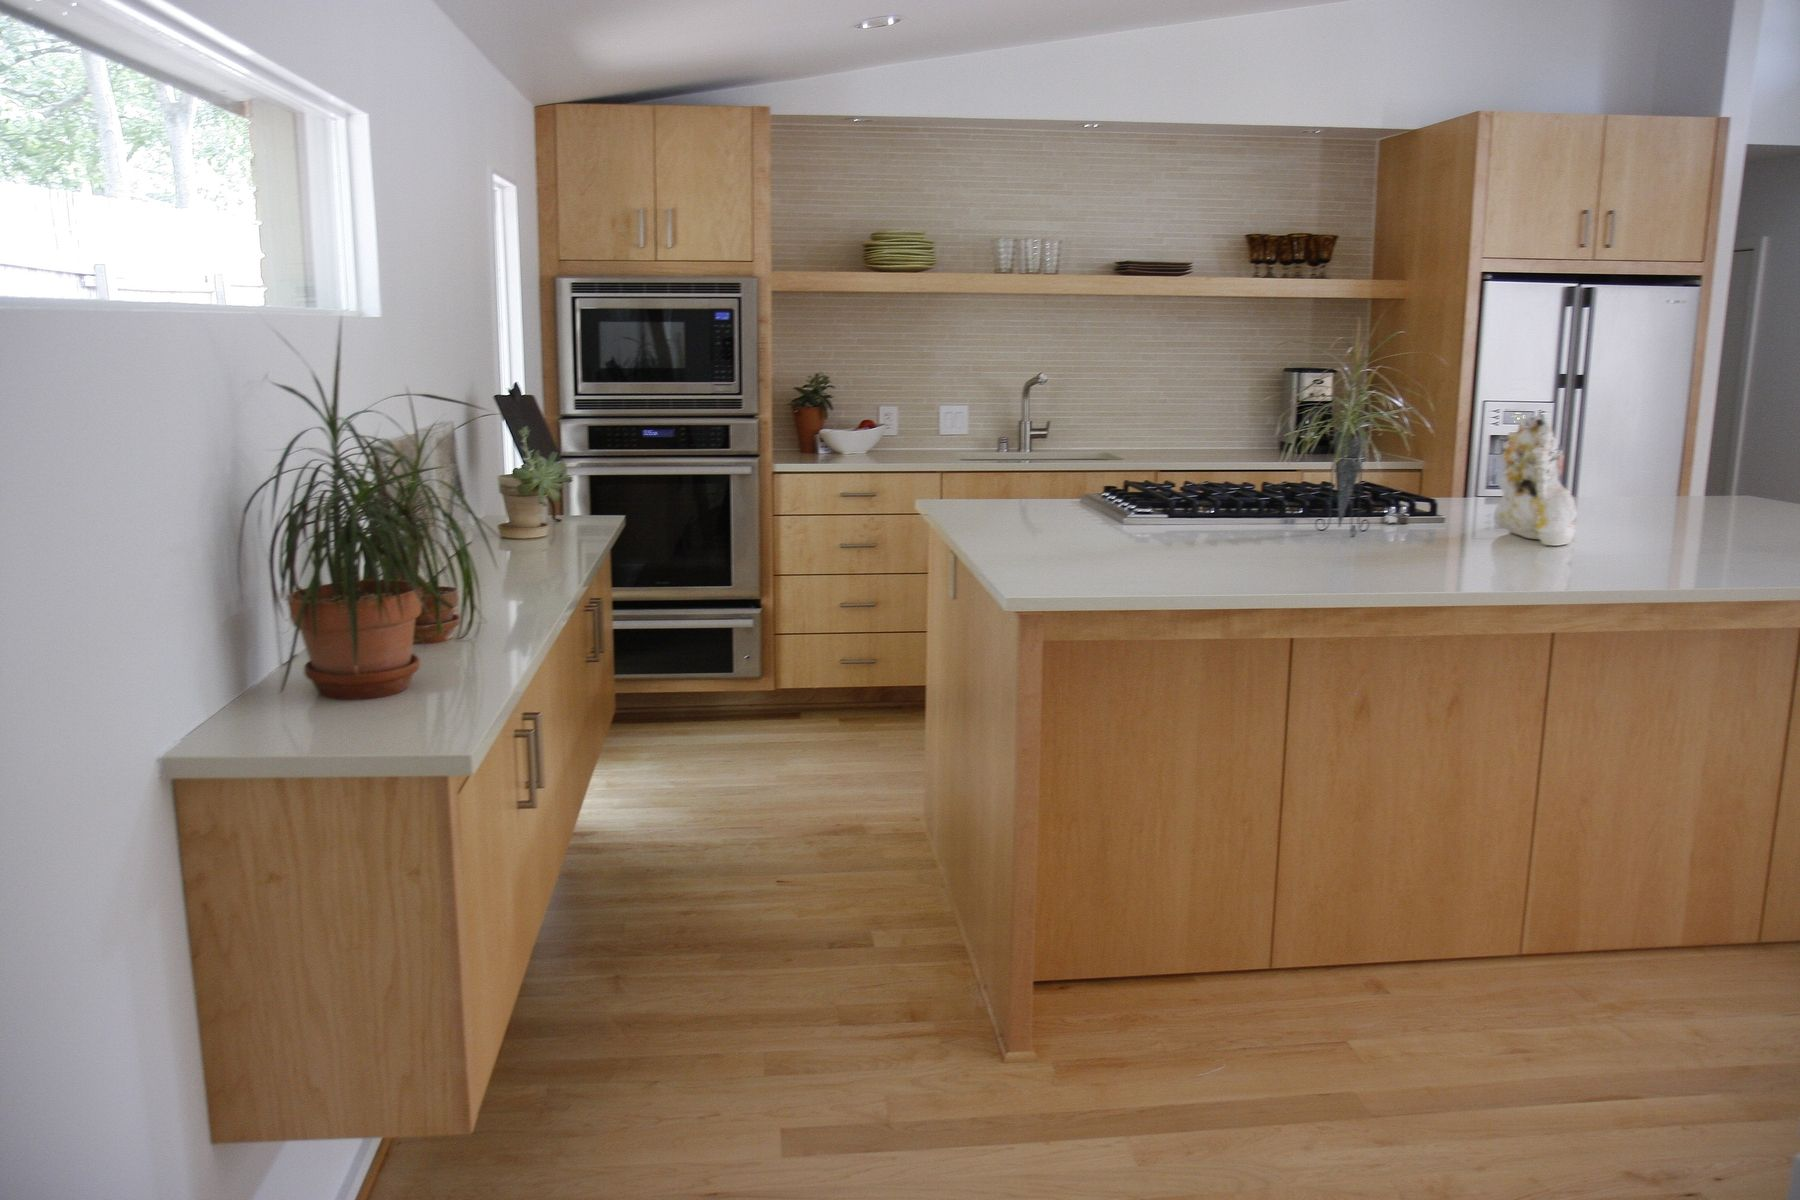 Custom maple kitchen cabinets with light colored quartz ... on Natural Maple Cabinets With Quartz Countertops  id=40611